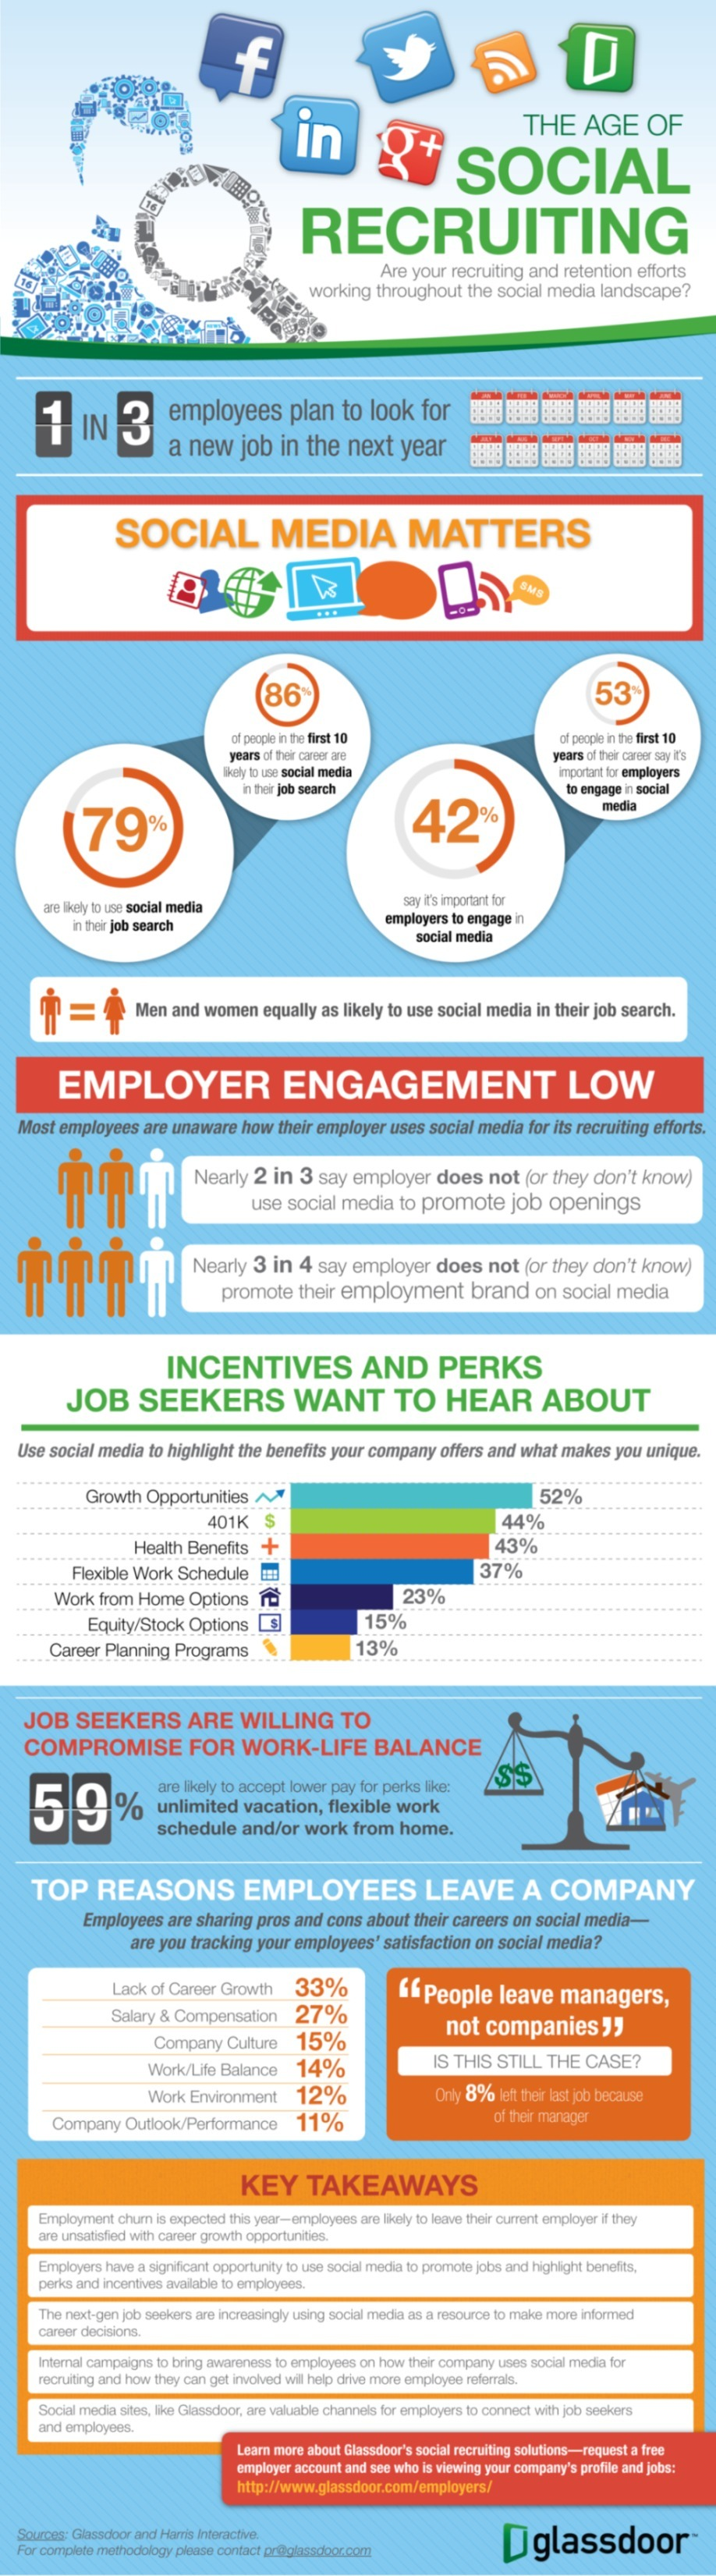 recruitment employment and social media Social media and access to personal information with the advent of social media sites such as facebook, twitter, instagram, and others, many people post so much personal information about themselves that anybody who can access their public profiles can get to know a lot about them.